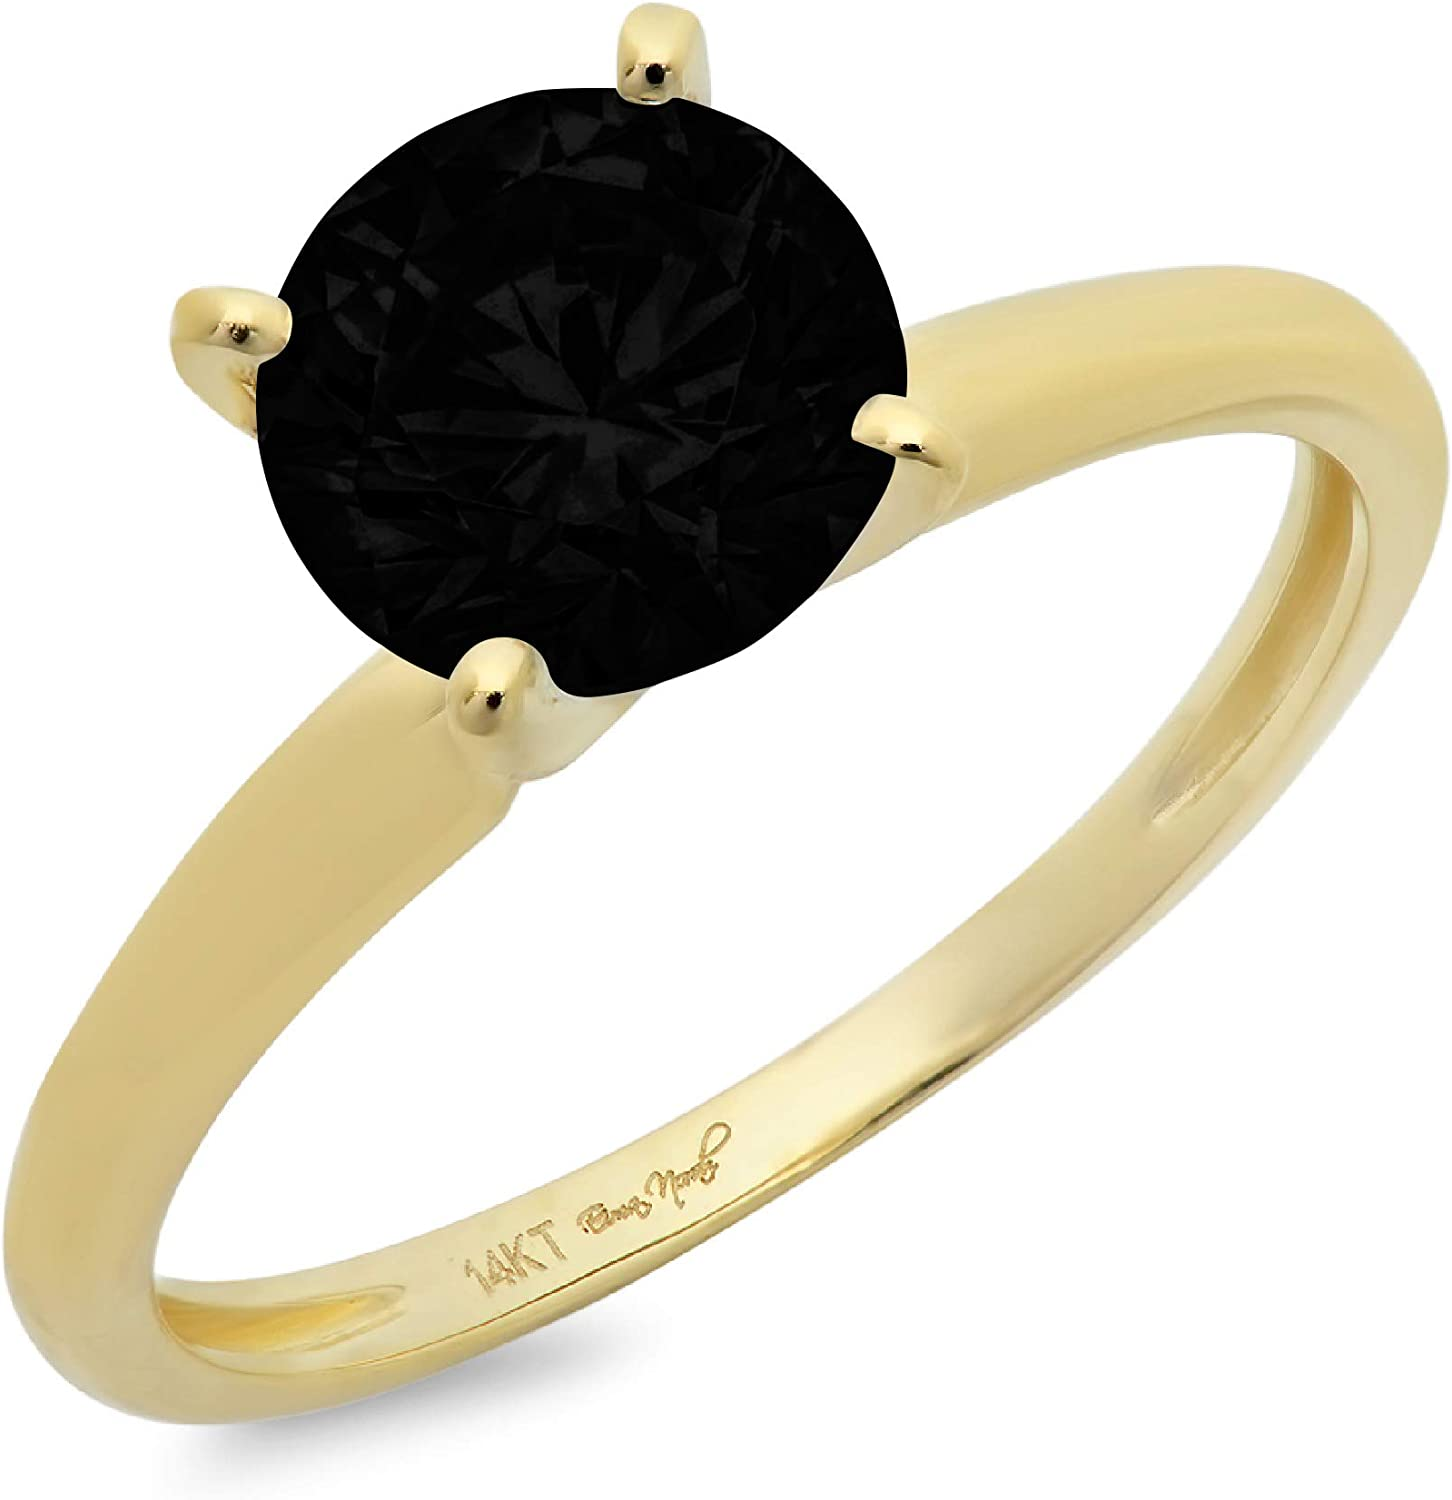 0.50 ct Brilliant Round Cut Solitaire Flawless Genuine Natural Black Onyx Gemstone Ideal VVS1 4-Prong Engagement Wedding Bridal Promise Anniversary Designer Ring in Solid 14k Yellow Gold for Women